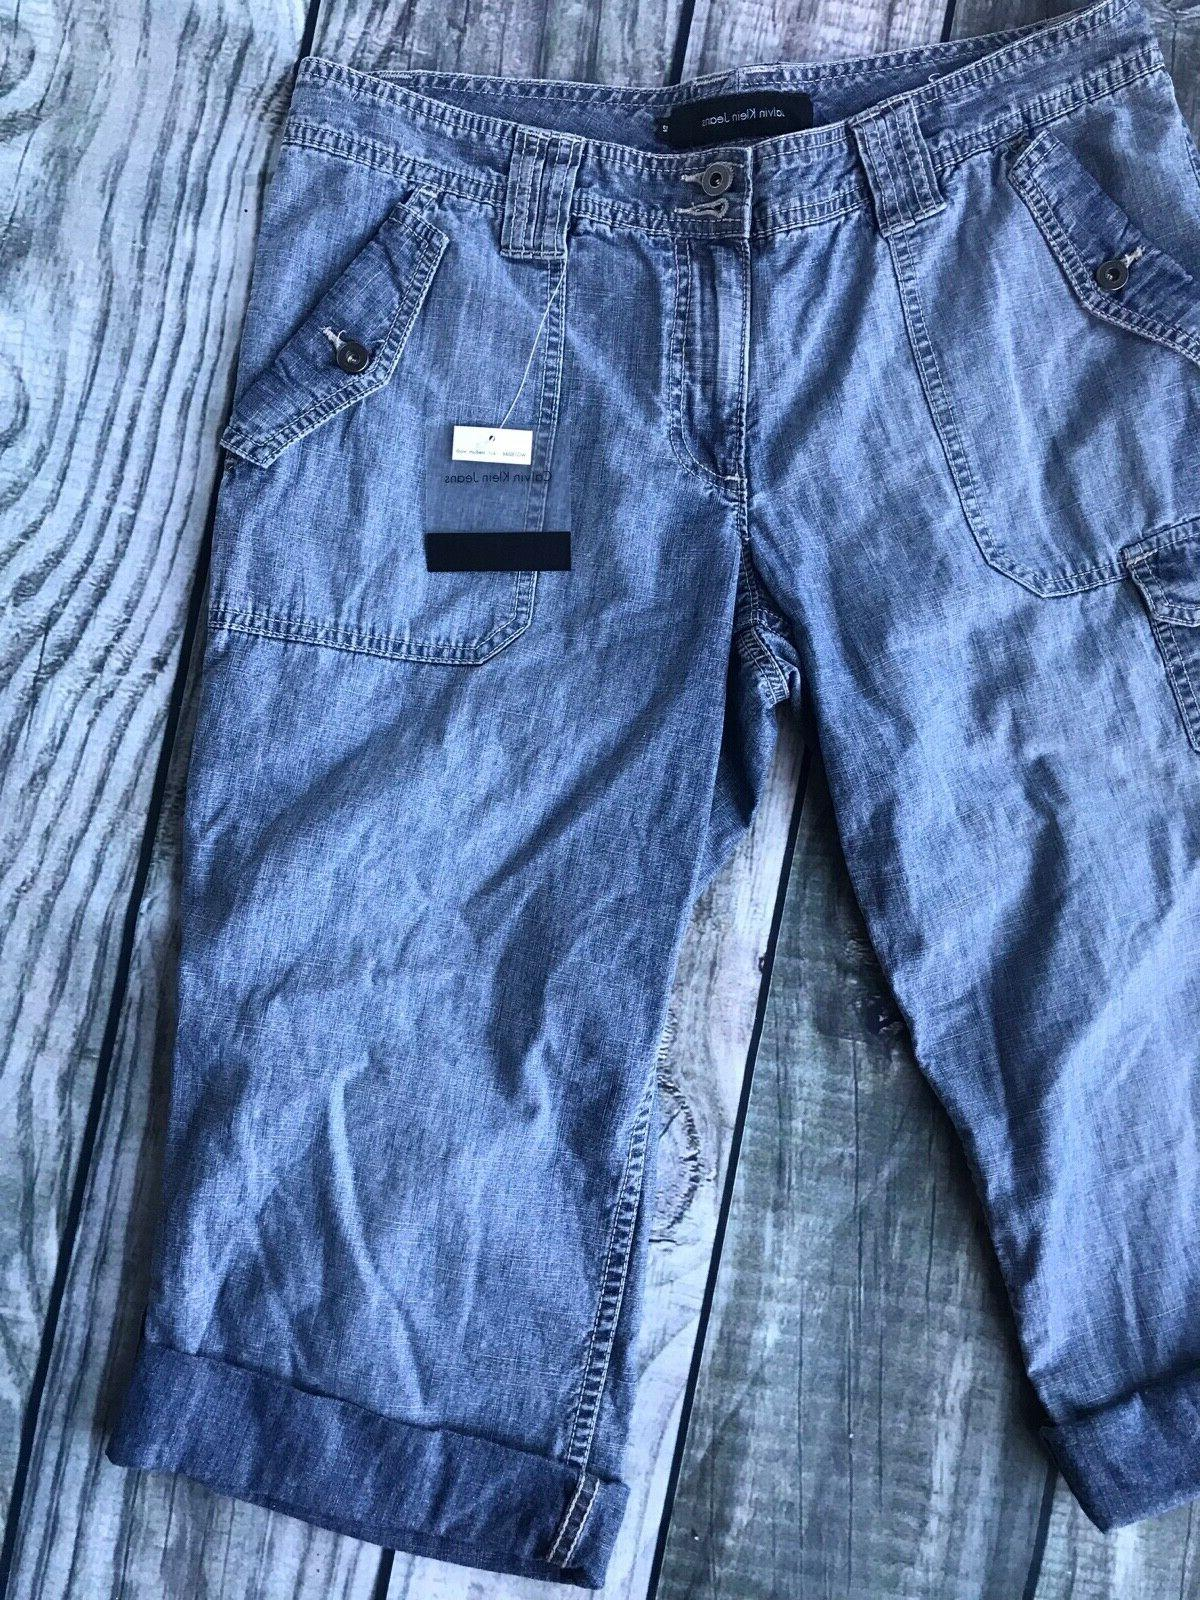 NWT Klein SZ Pants NEW